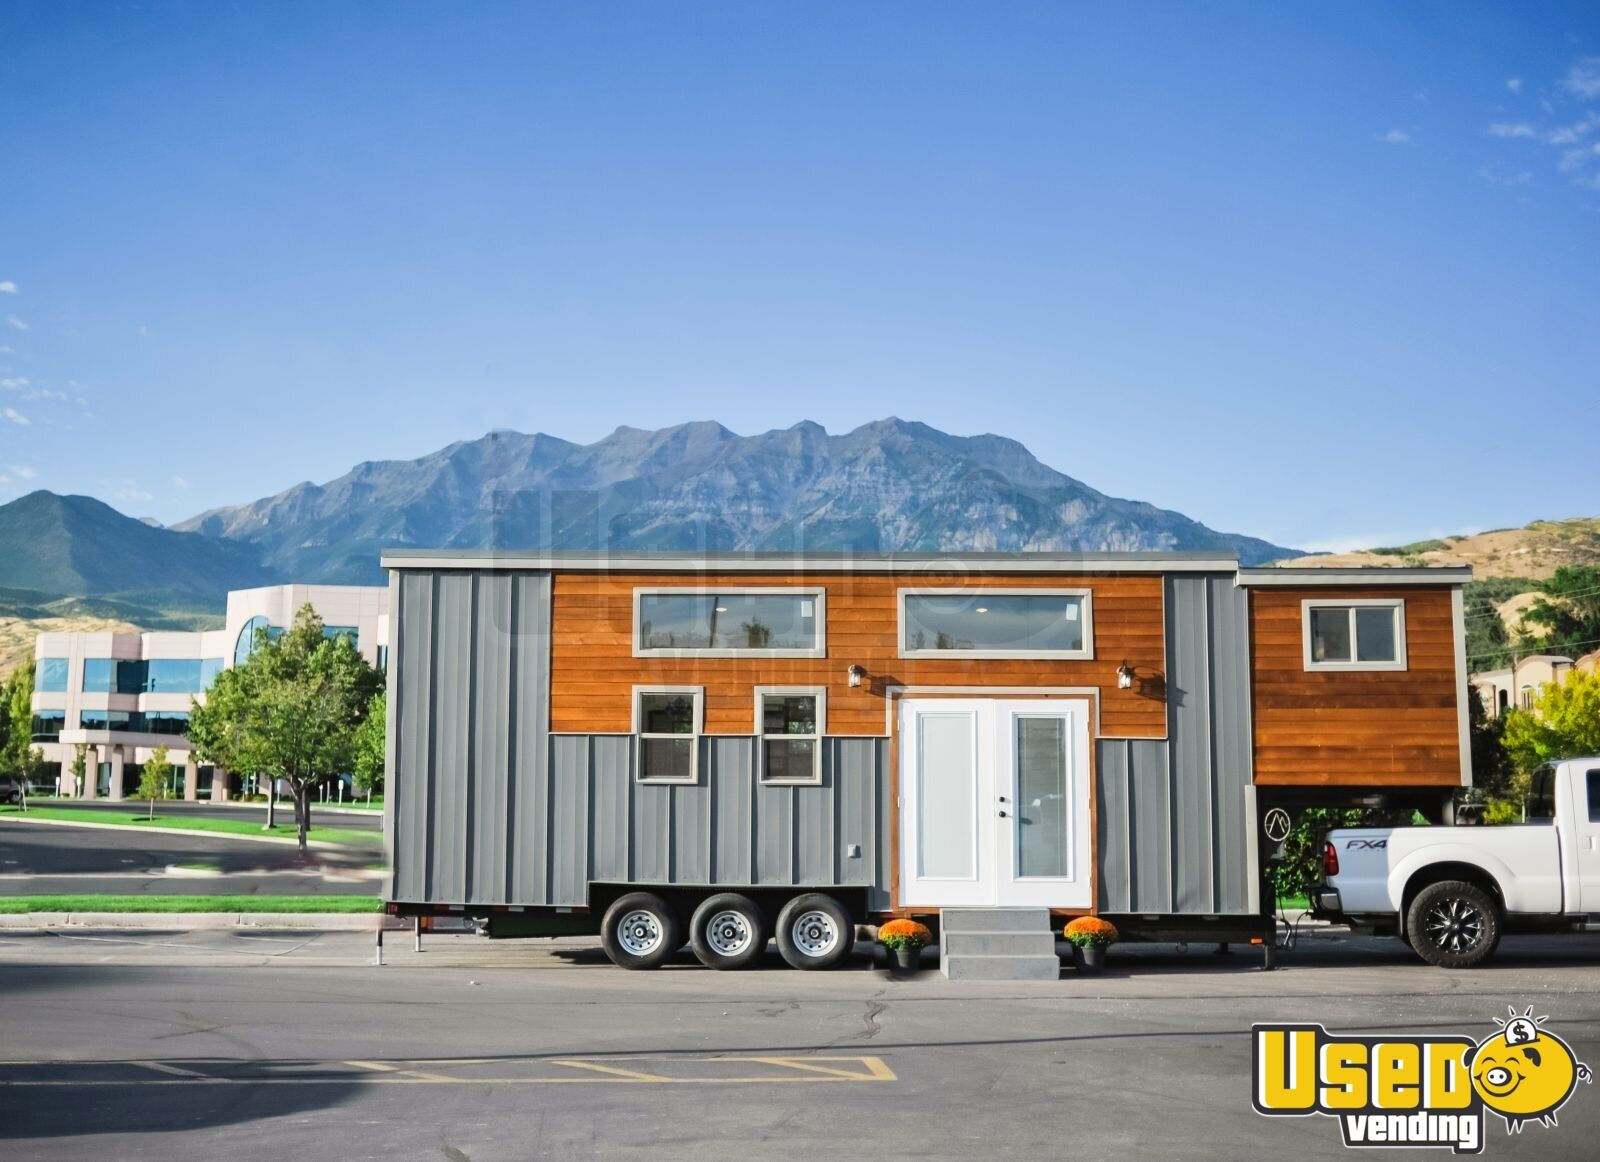 2018 Alpine Tiny Homes Mobile Hair Salon Truck Air Conditioning Utah for Sale - 2